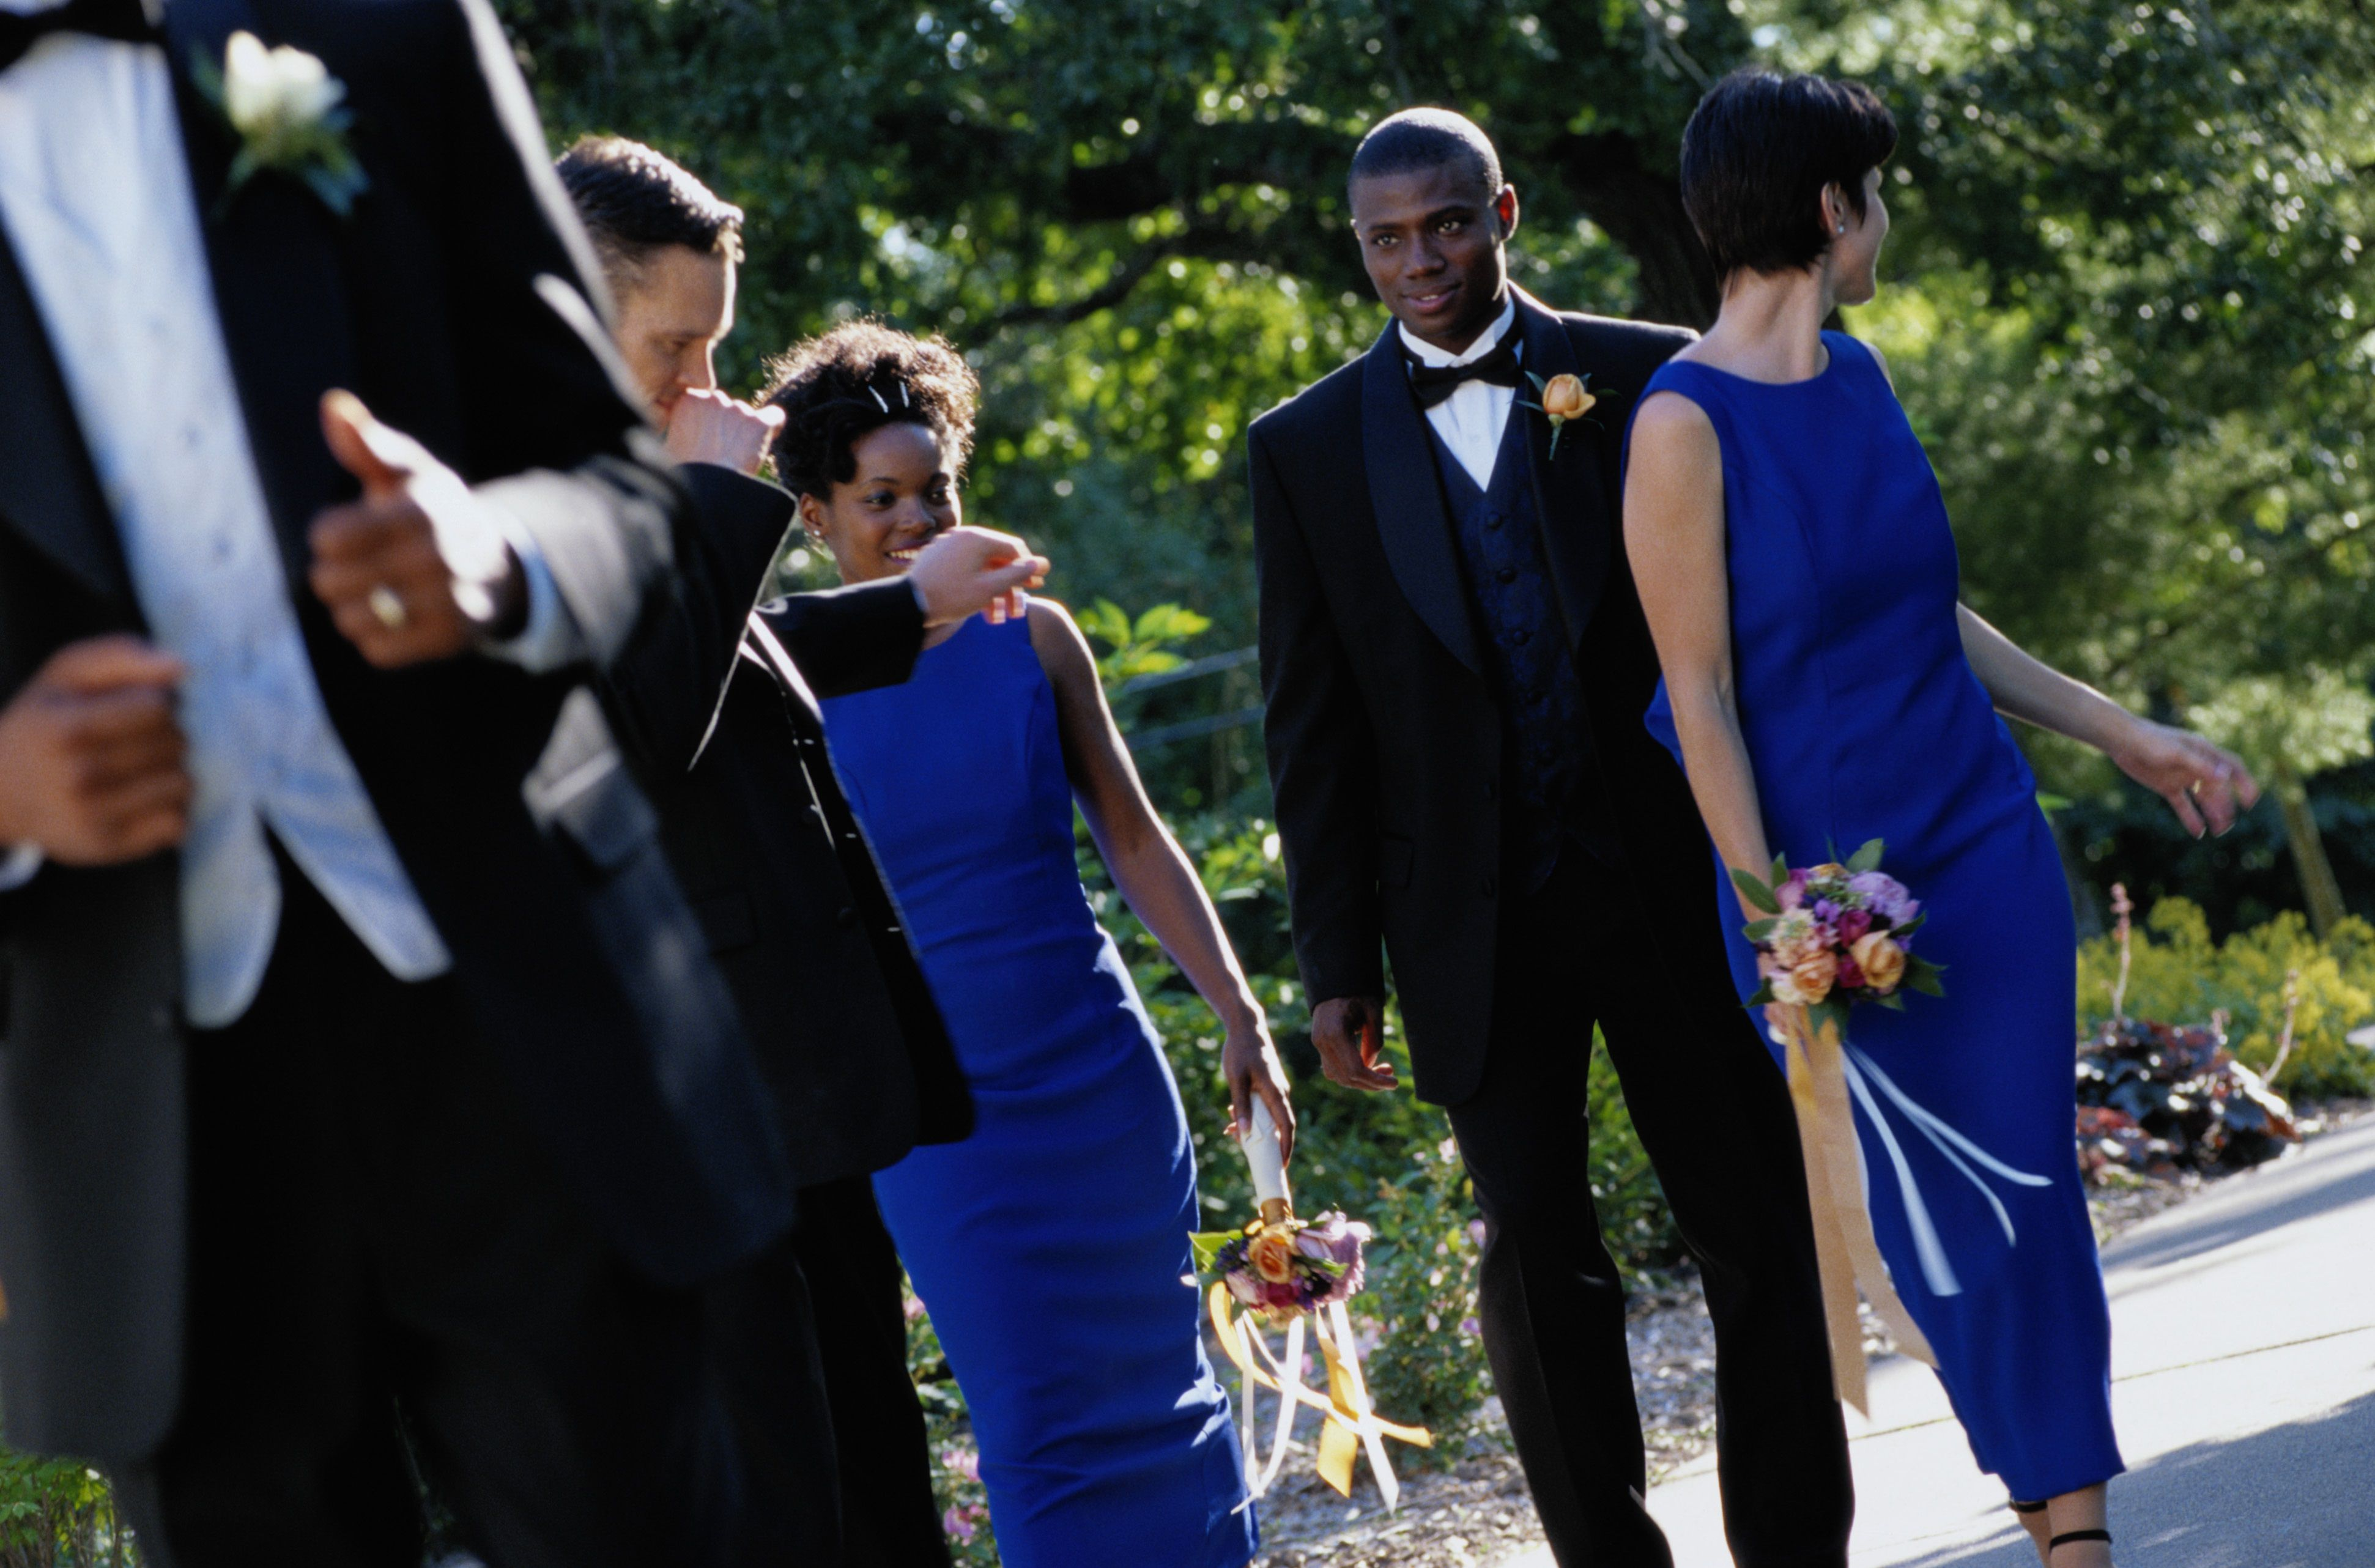 How Many Bridesmaids And Groomsmen Should There Be?